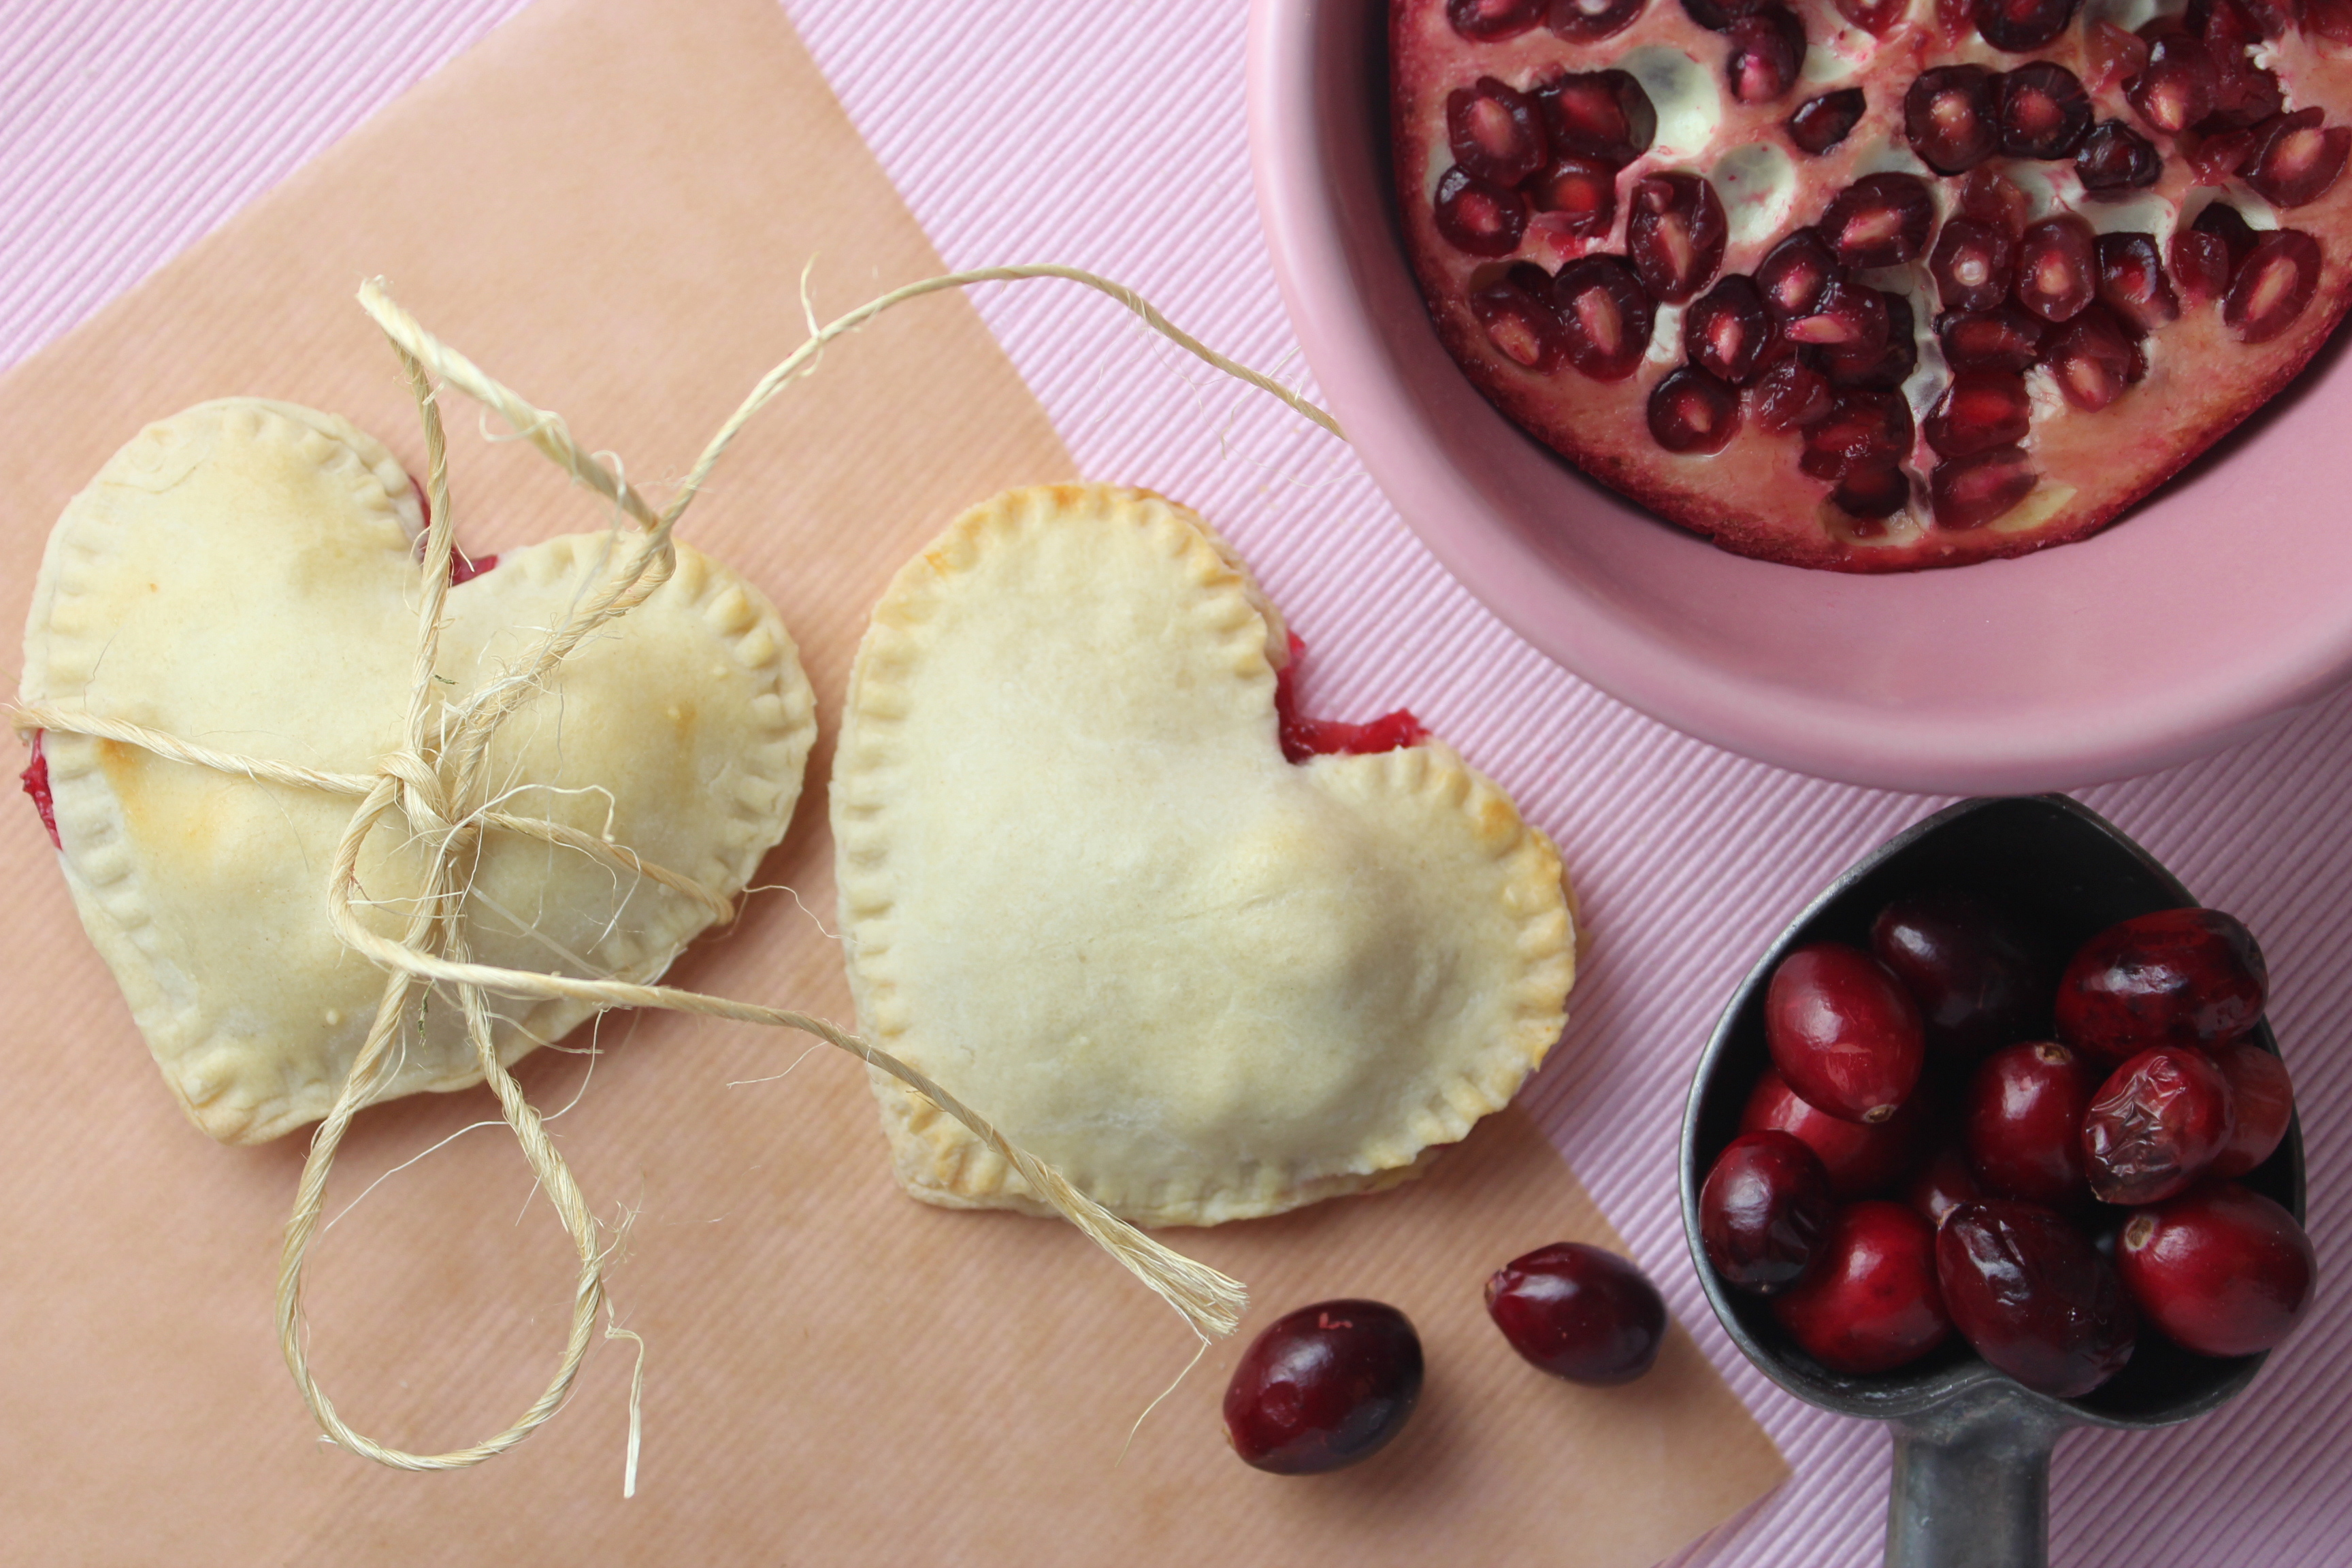 Mini Heart Shaped Pies